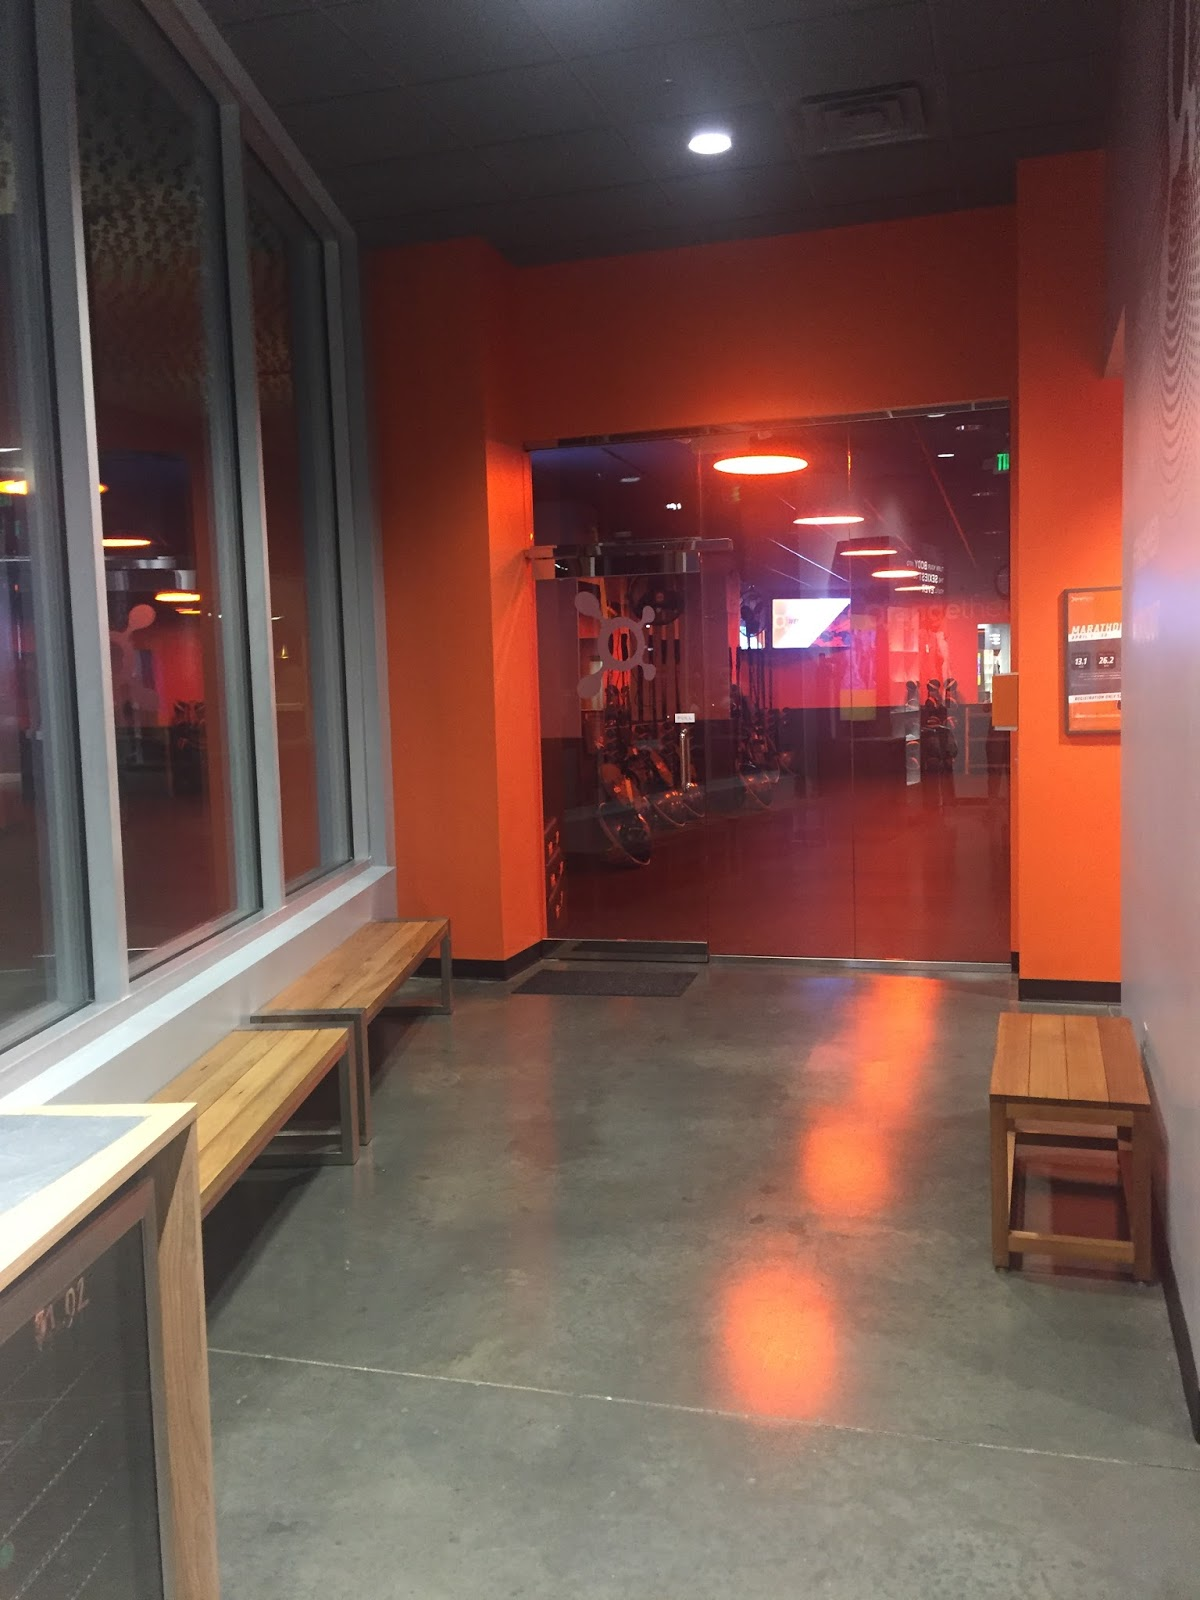 Popular North Carolina style blogger Rebecca Lately shares her experience at Orangetheory Fitness!  Click here to read more now!